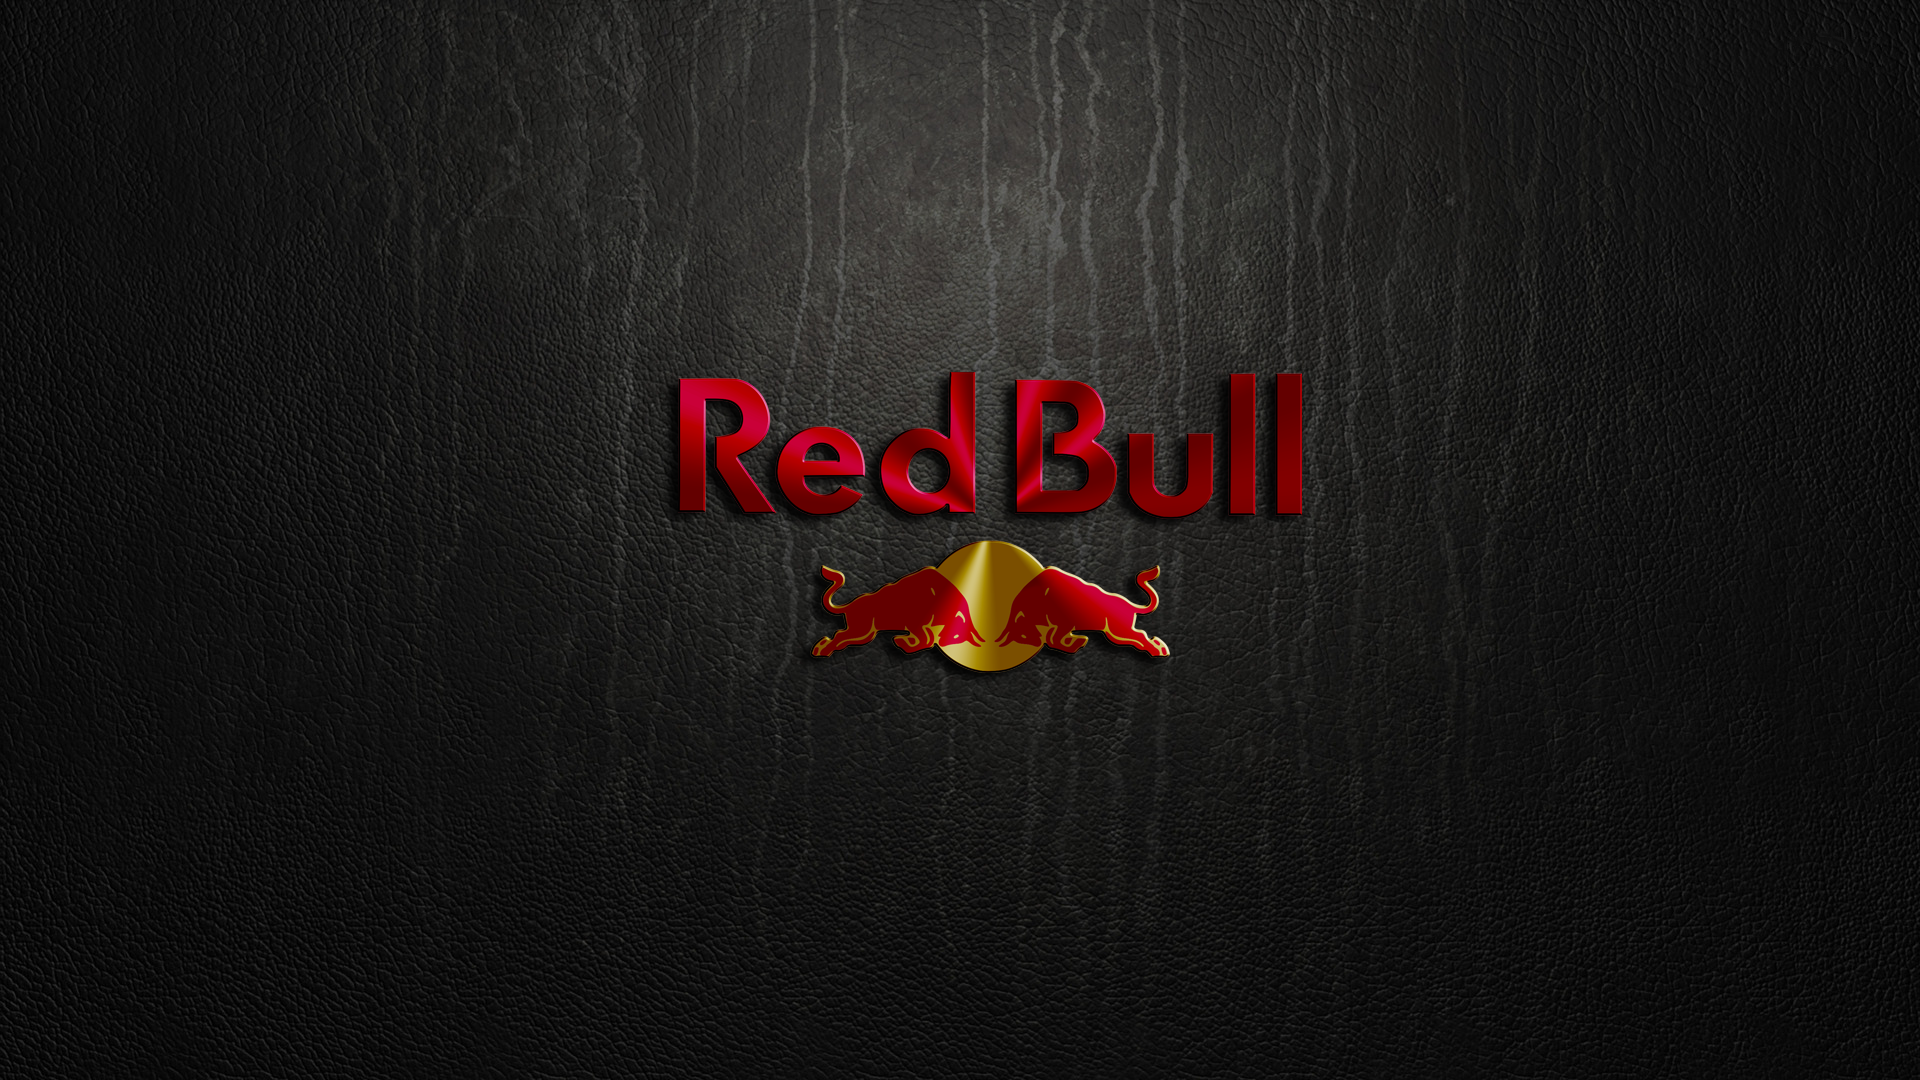 Red Bull Wallpaper 17889 1920x1080 Px